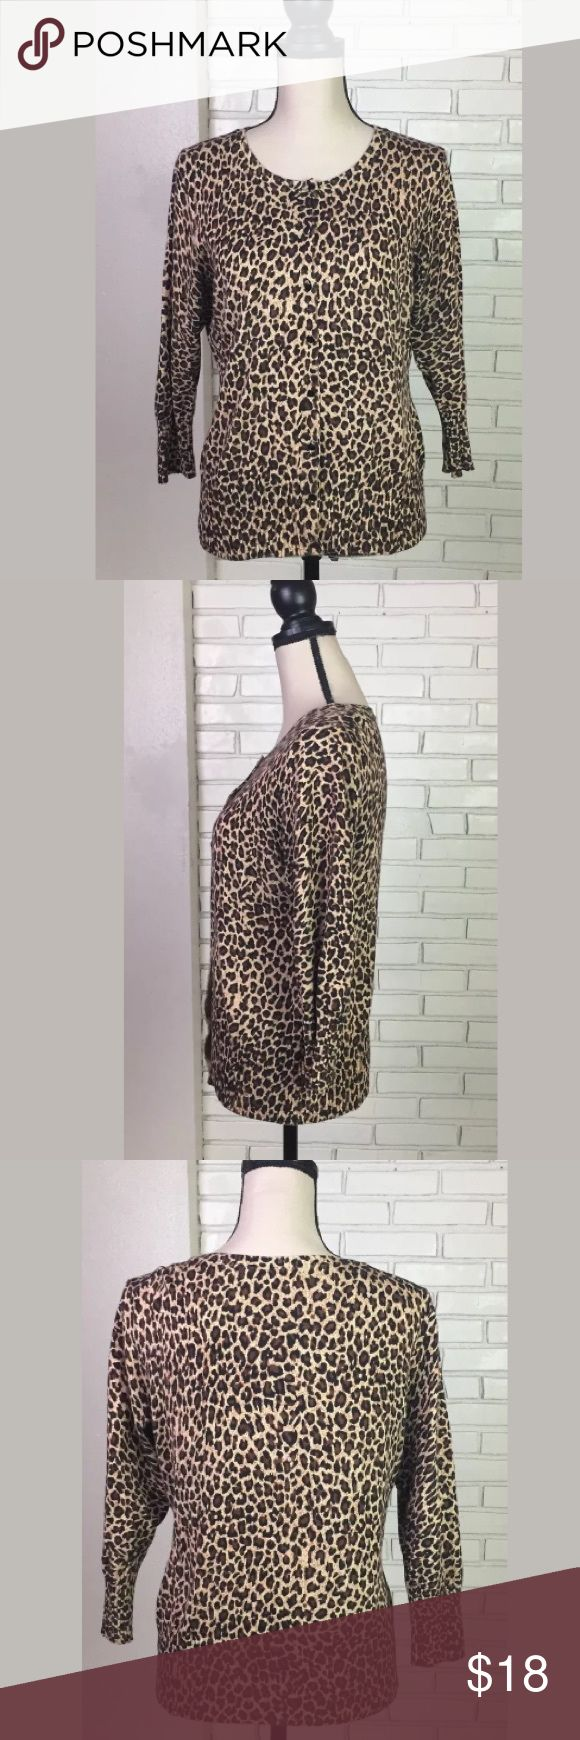 "Animal Print Cardigan 3/4 Sleeve Sweater Size LG Debbie Morgan, Cardigan/Sweater, Button Front, 3/4 Sleeve, Animal Print, Size: Large. Pre-owned with no flaws. Please refer to photos. Armpit to Armpit: 19"". Length: 22"". Debbie Morgan Sweaters Cardigans"